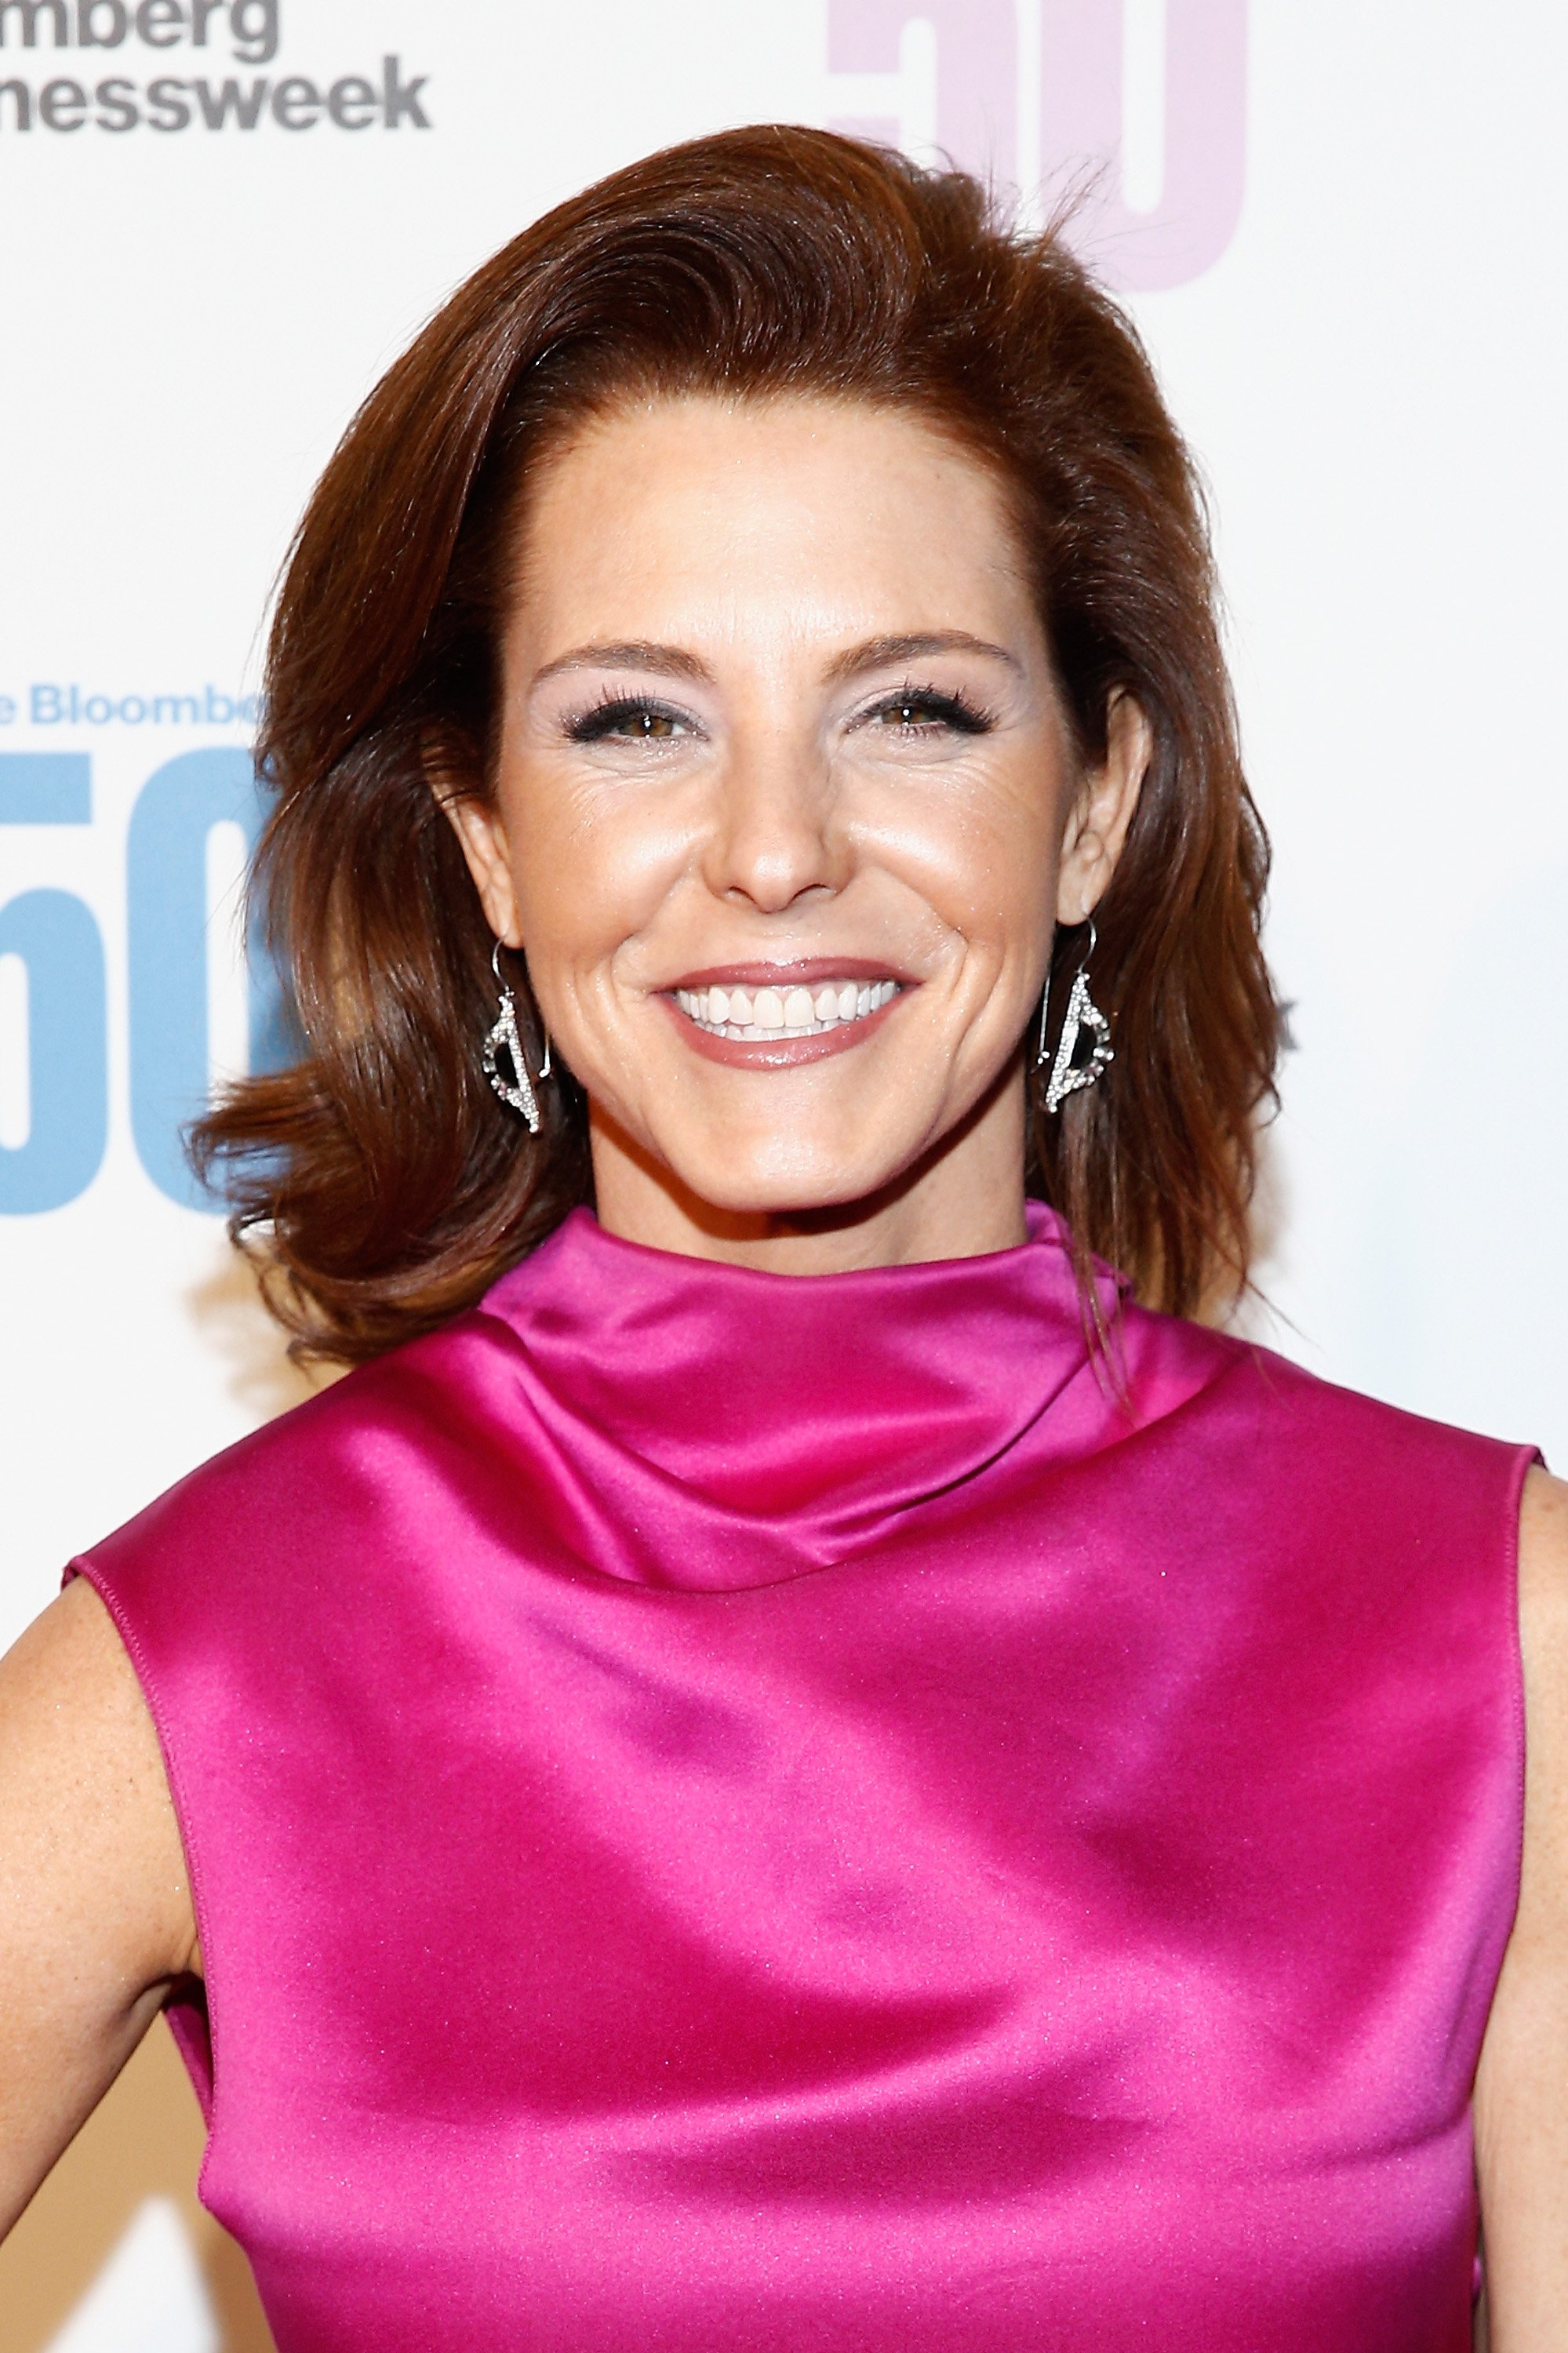 """NEW YORK, NY - DECEMBER 04: Broadcast journalist Stephanie Ruhle attends """"The Bloomberg 50"""" Celebration at Gotham Hall on December 4, 2017 in New York City. (Photo by Brian Ach/Getty Images for Bloomberg)"""